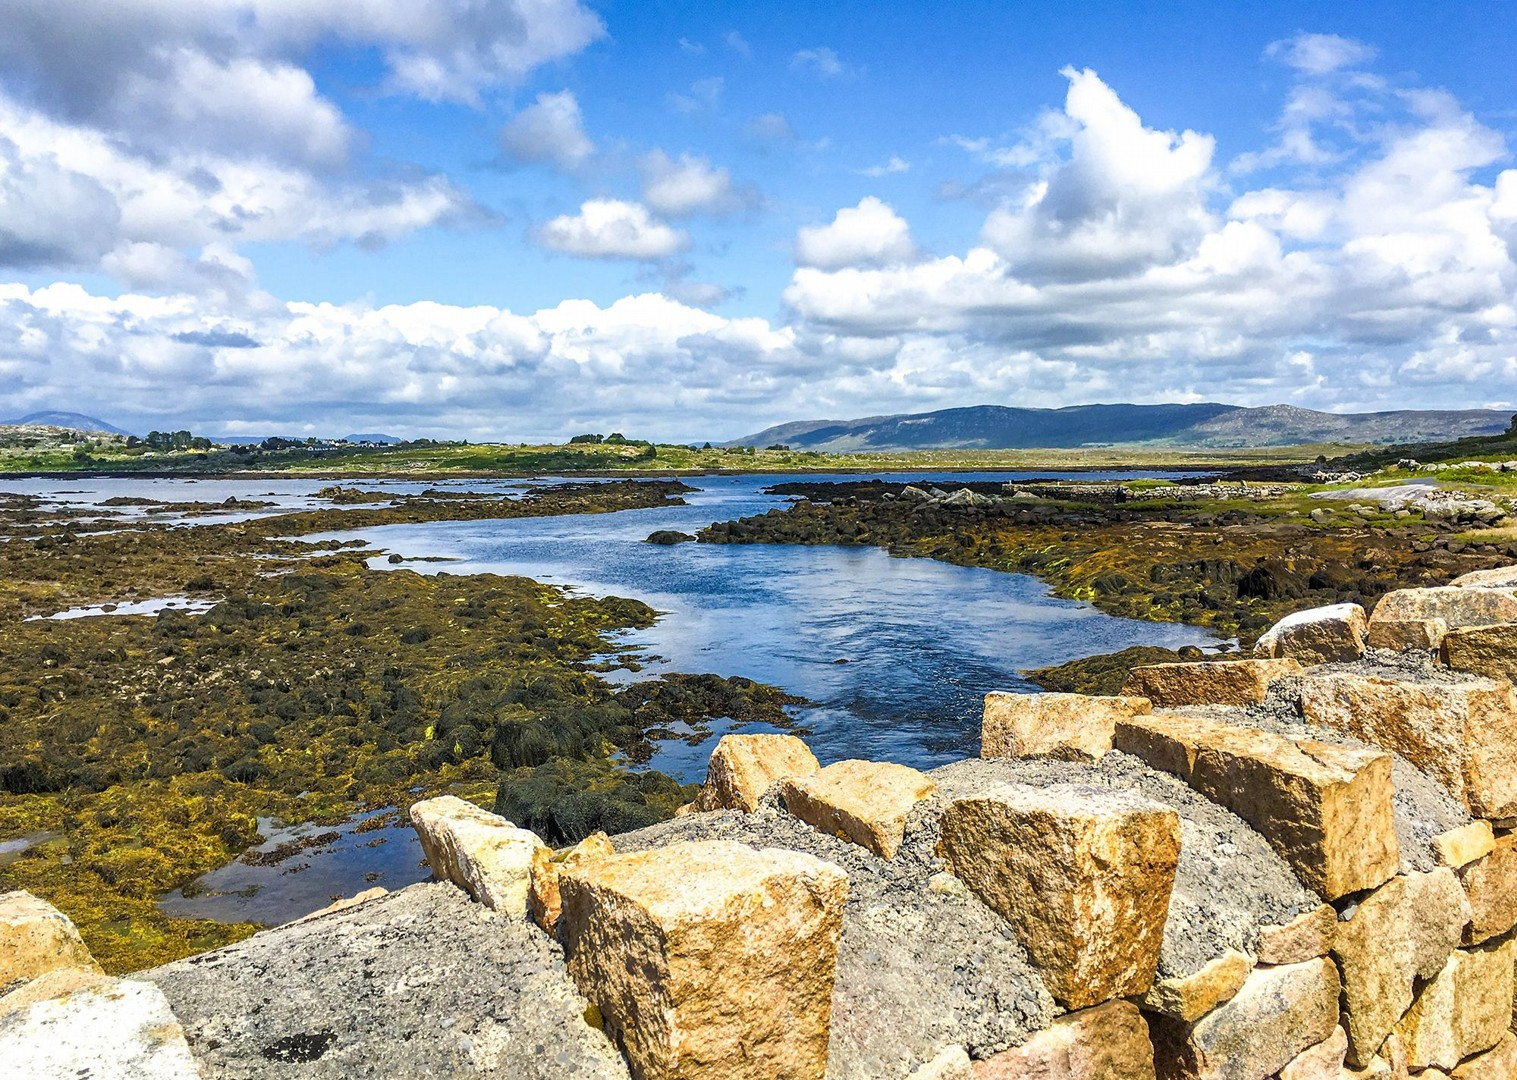 ireland-cycling-leisure-biking-self-guided-trip-holidays-with-saddle-skedaddle.jpg - NEW! Ireland - Connemara and the Aran Isles - Leisure Cycling